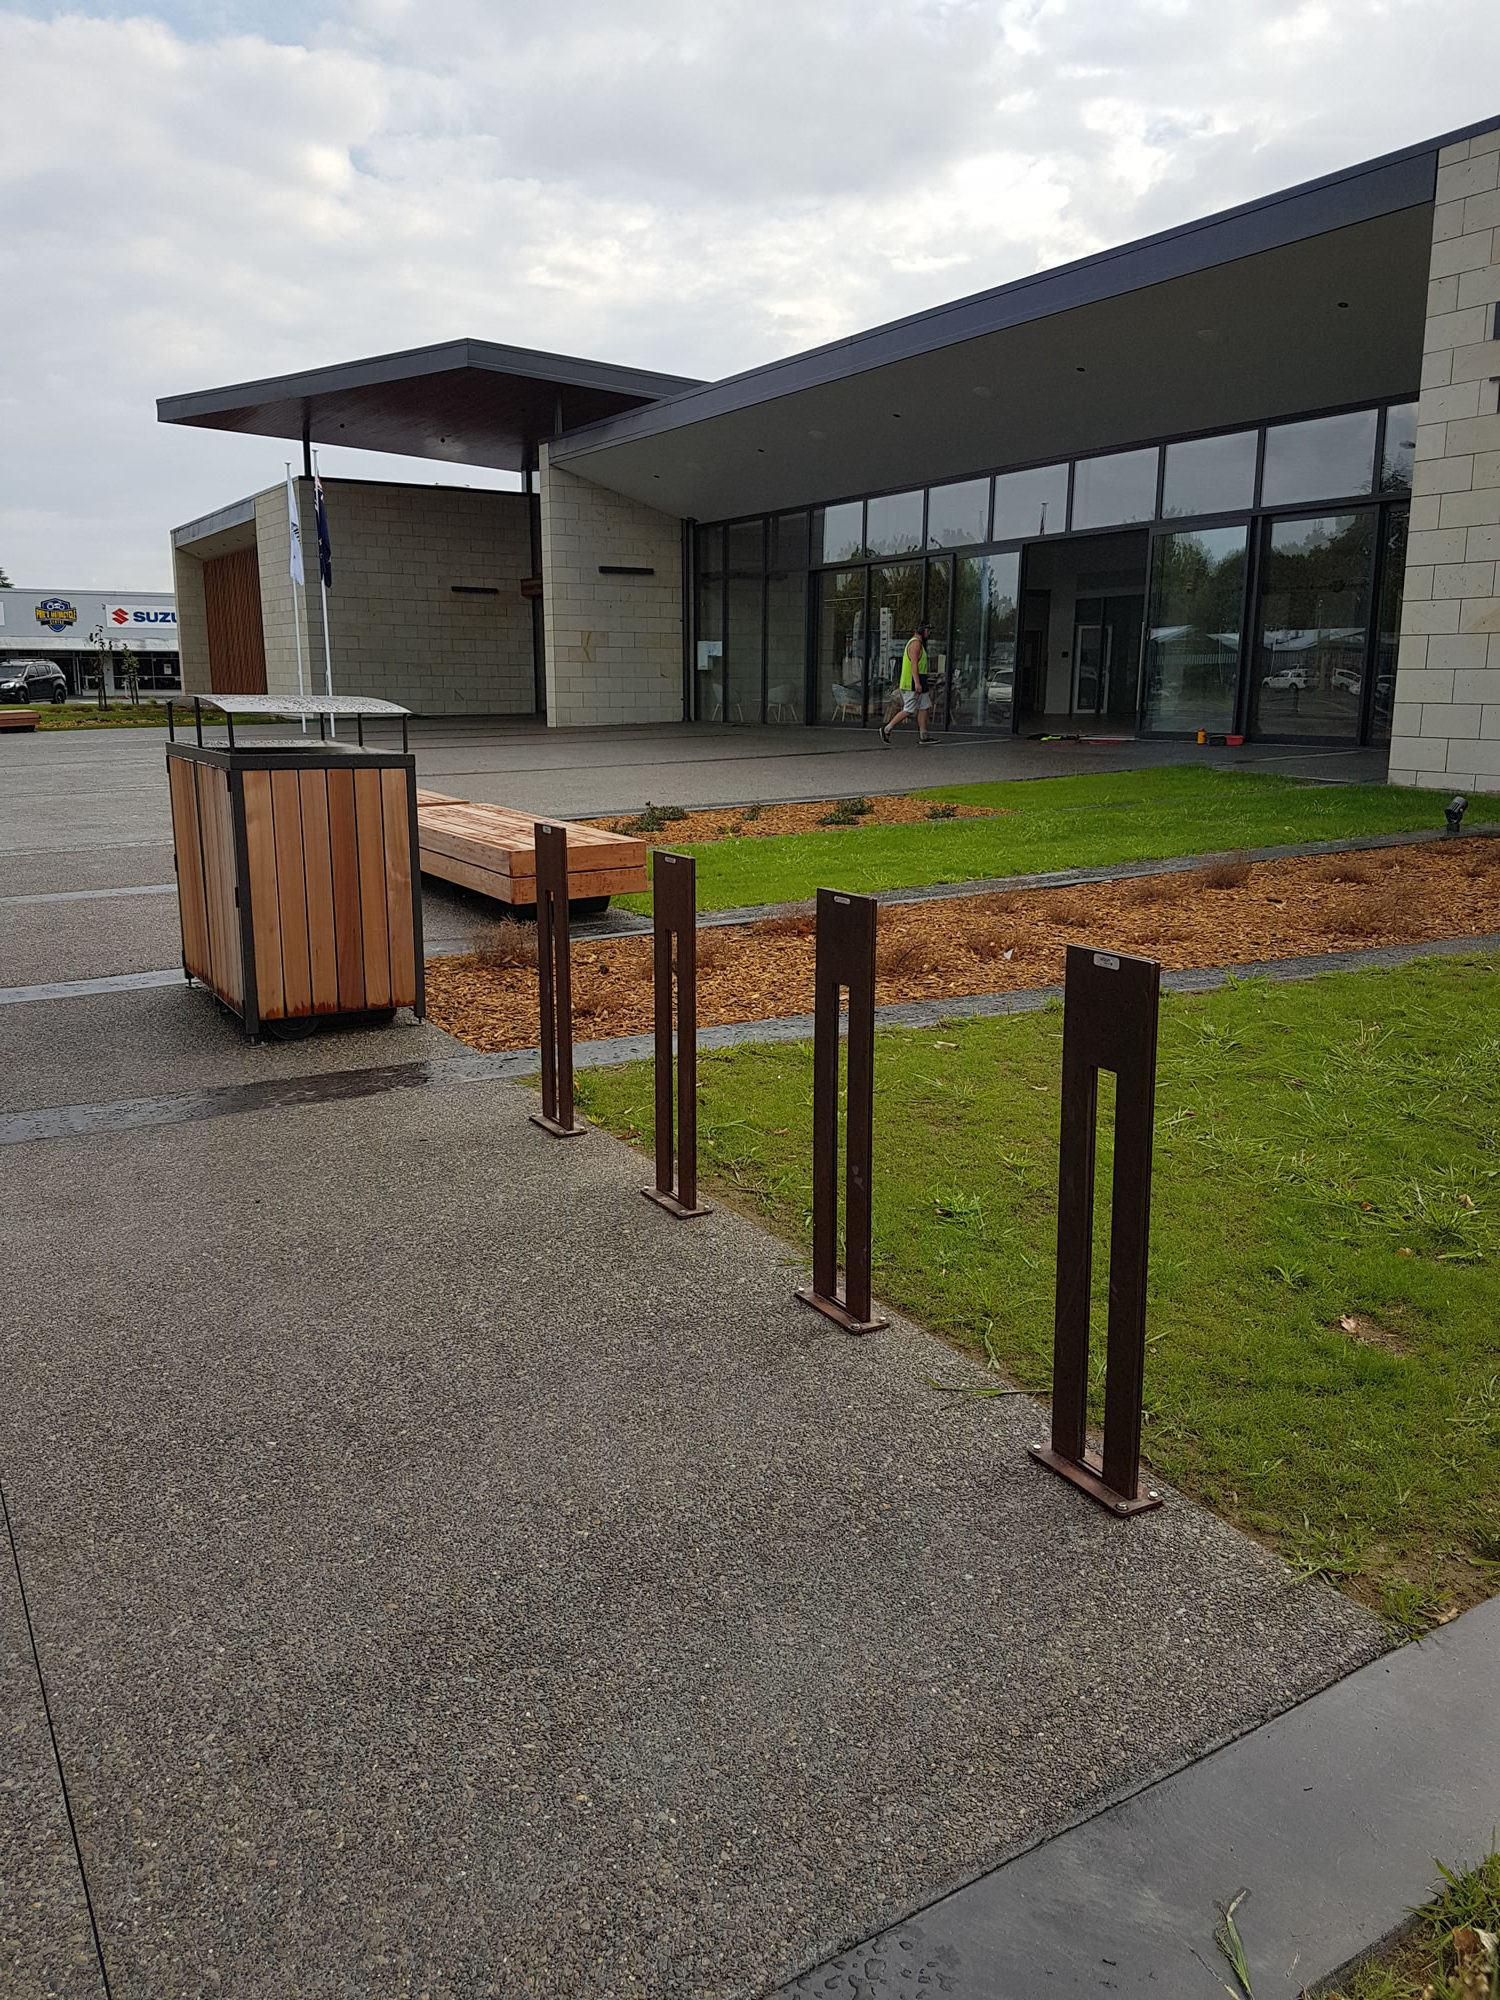 Matamata Piako Civic Centre  Urban Effects